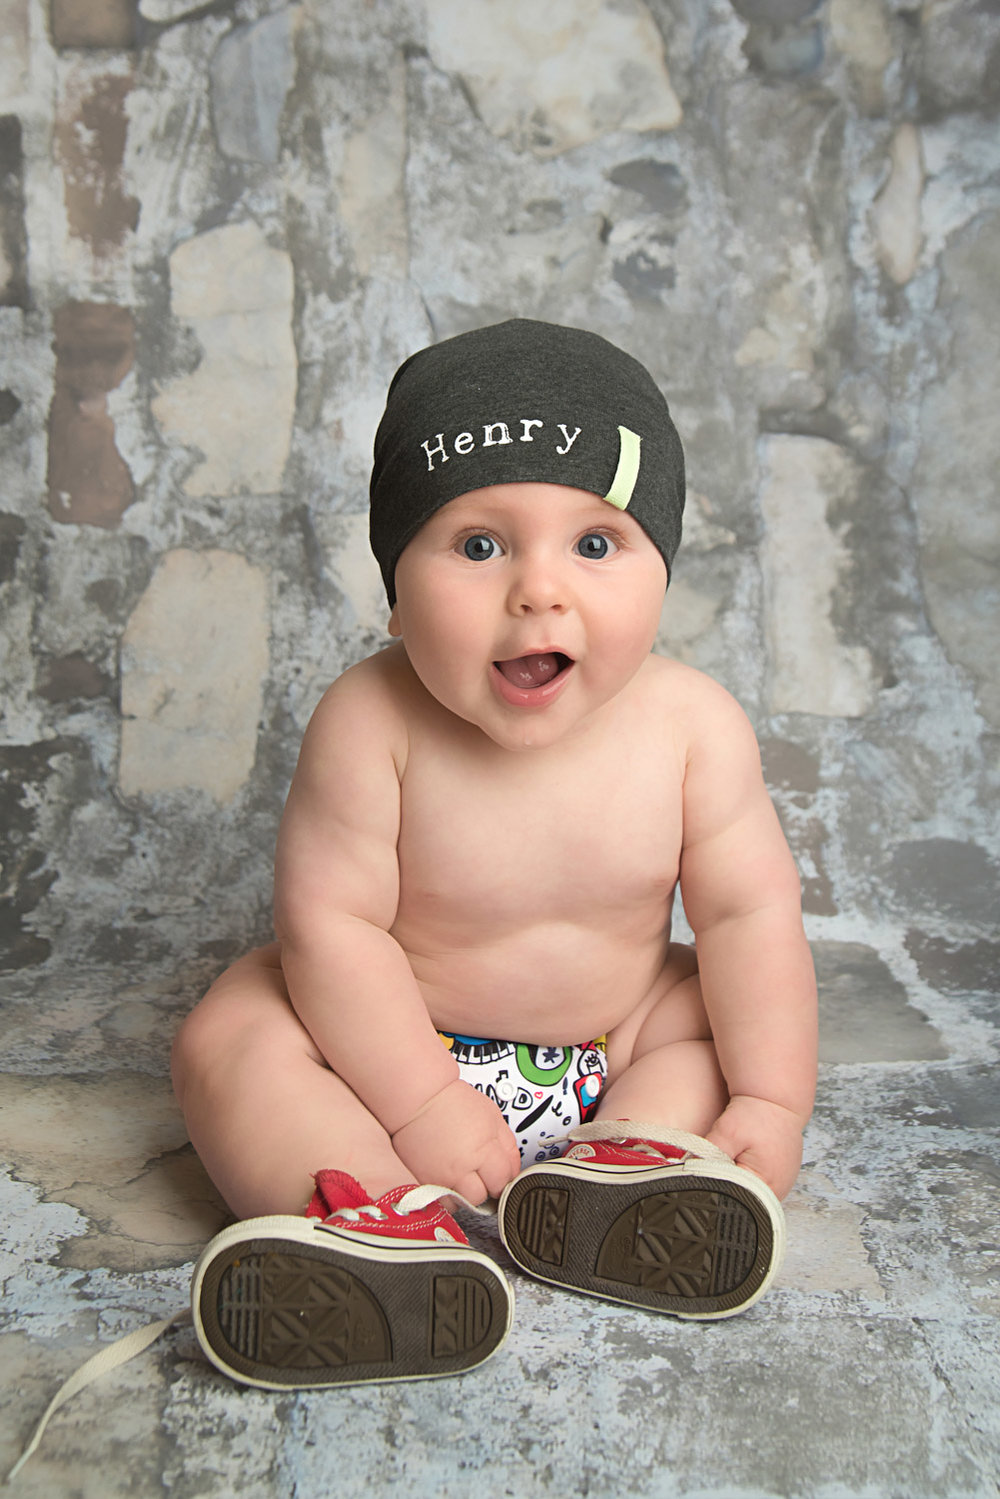 st-louis-baby-photography-studio-6-month-boy-in hat-diaper-and-converse-shoes-on-grey-brick-backdrop.jpg